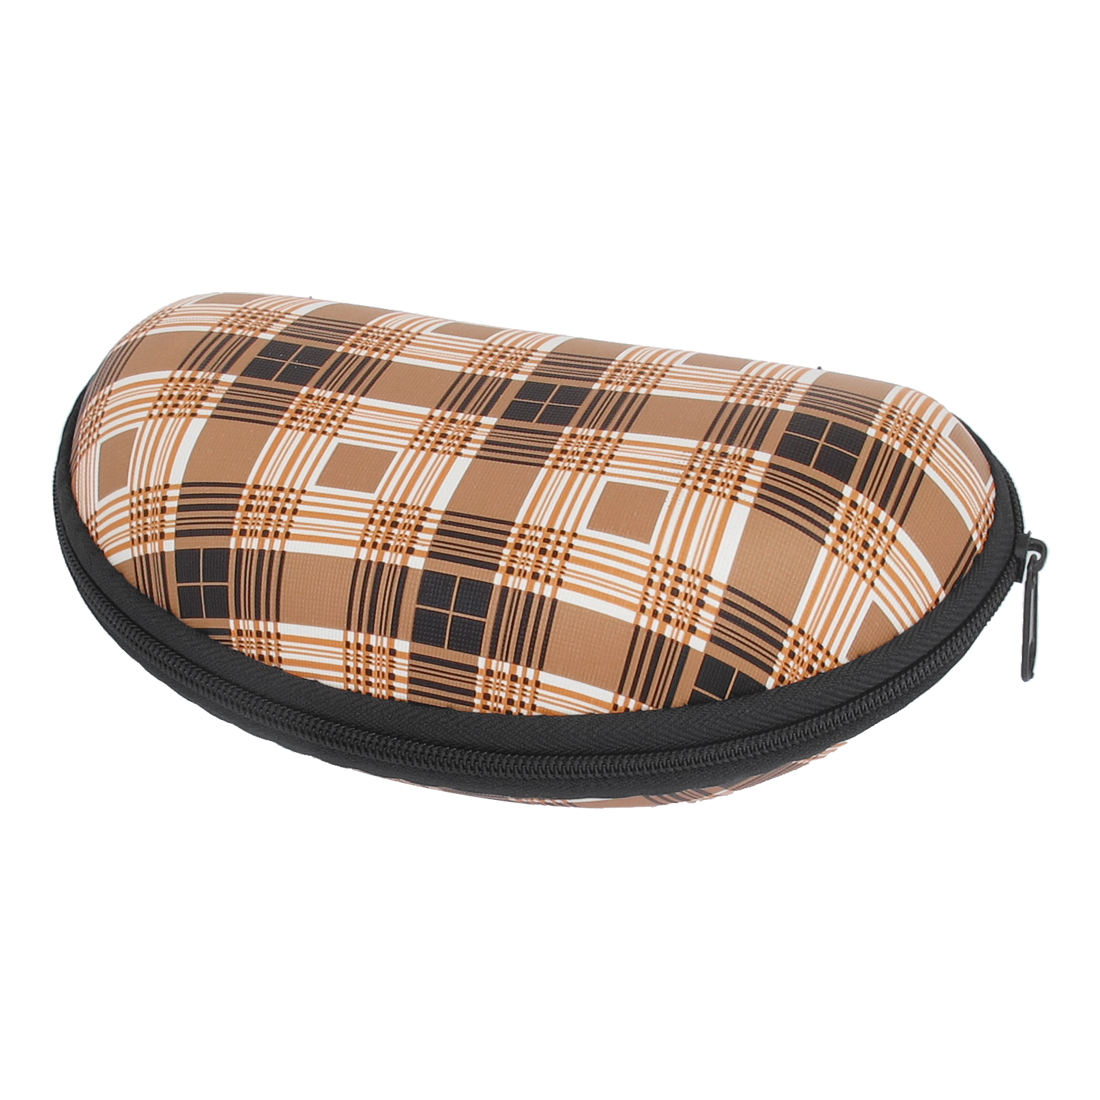 Zip Up Plaid Pattern Sunglasses Eyeglasses Case Holder Box Beige